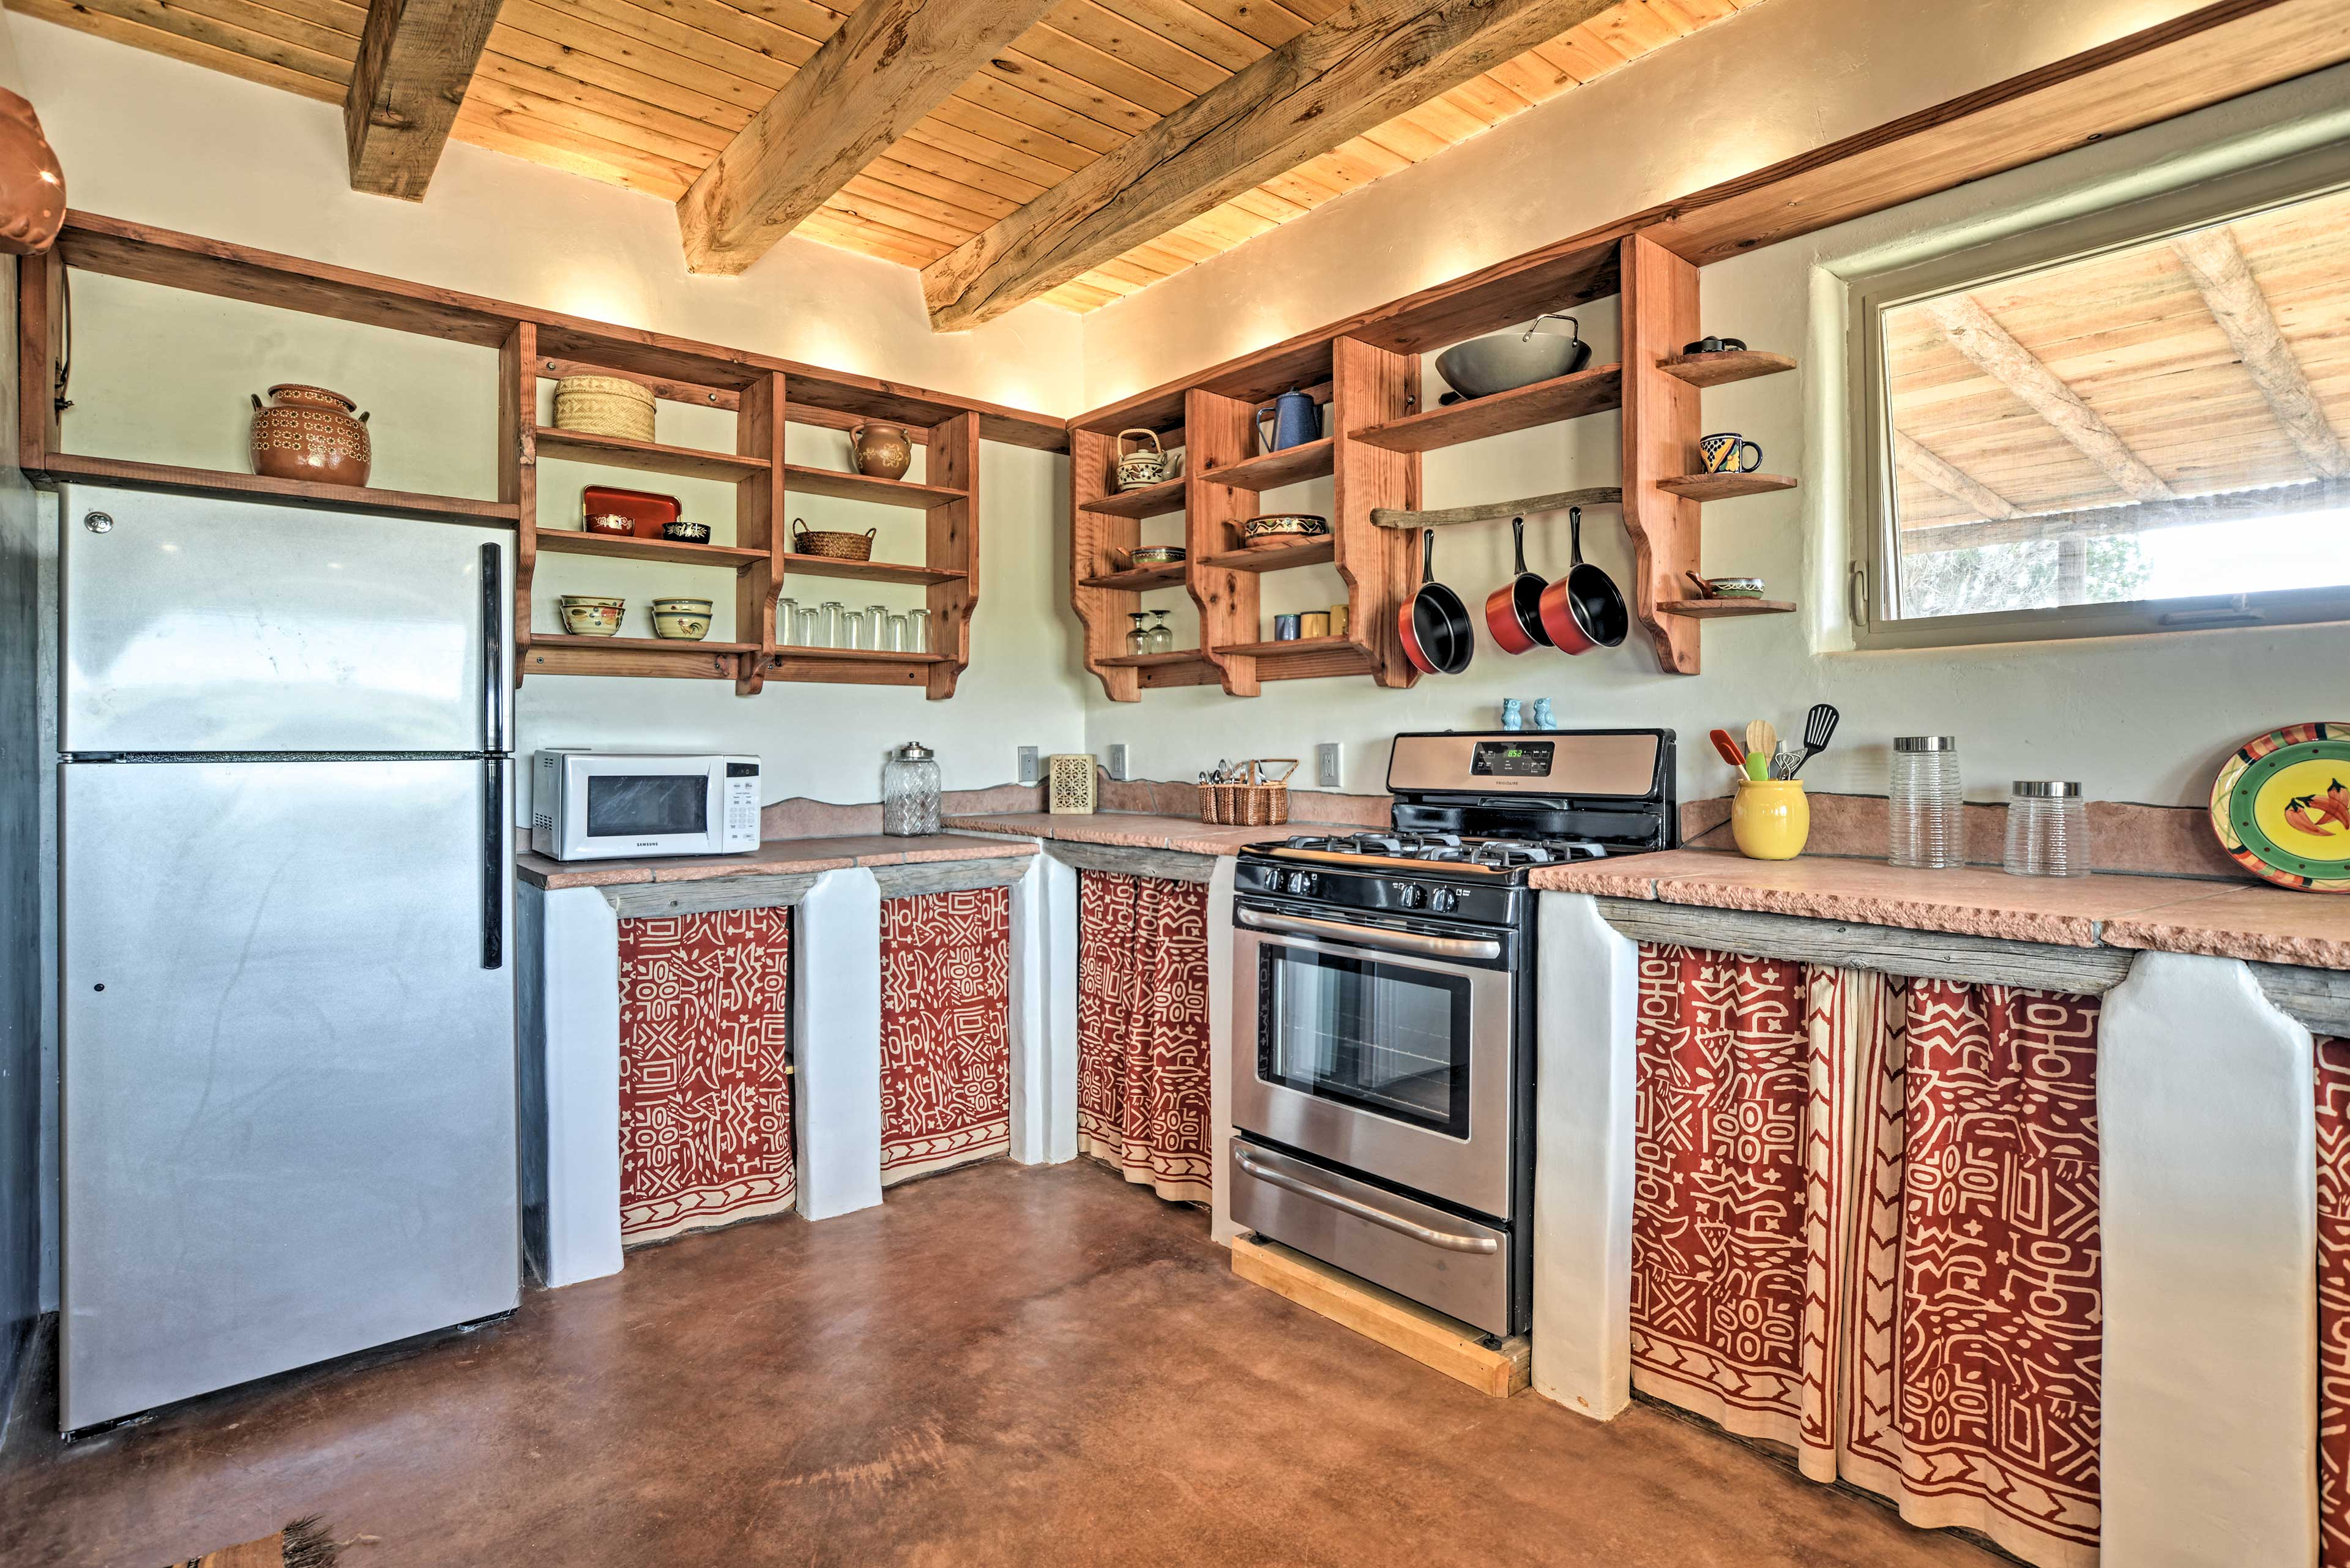 Stainless steel appliances elevate the space.